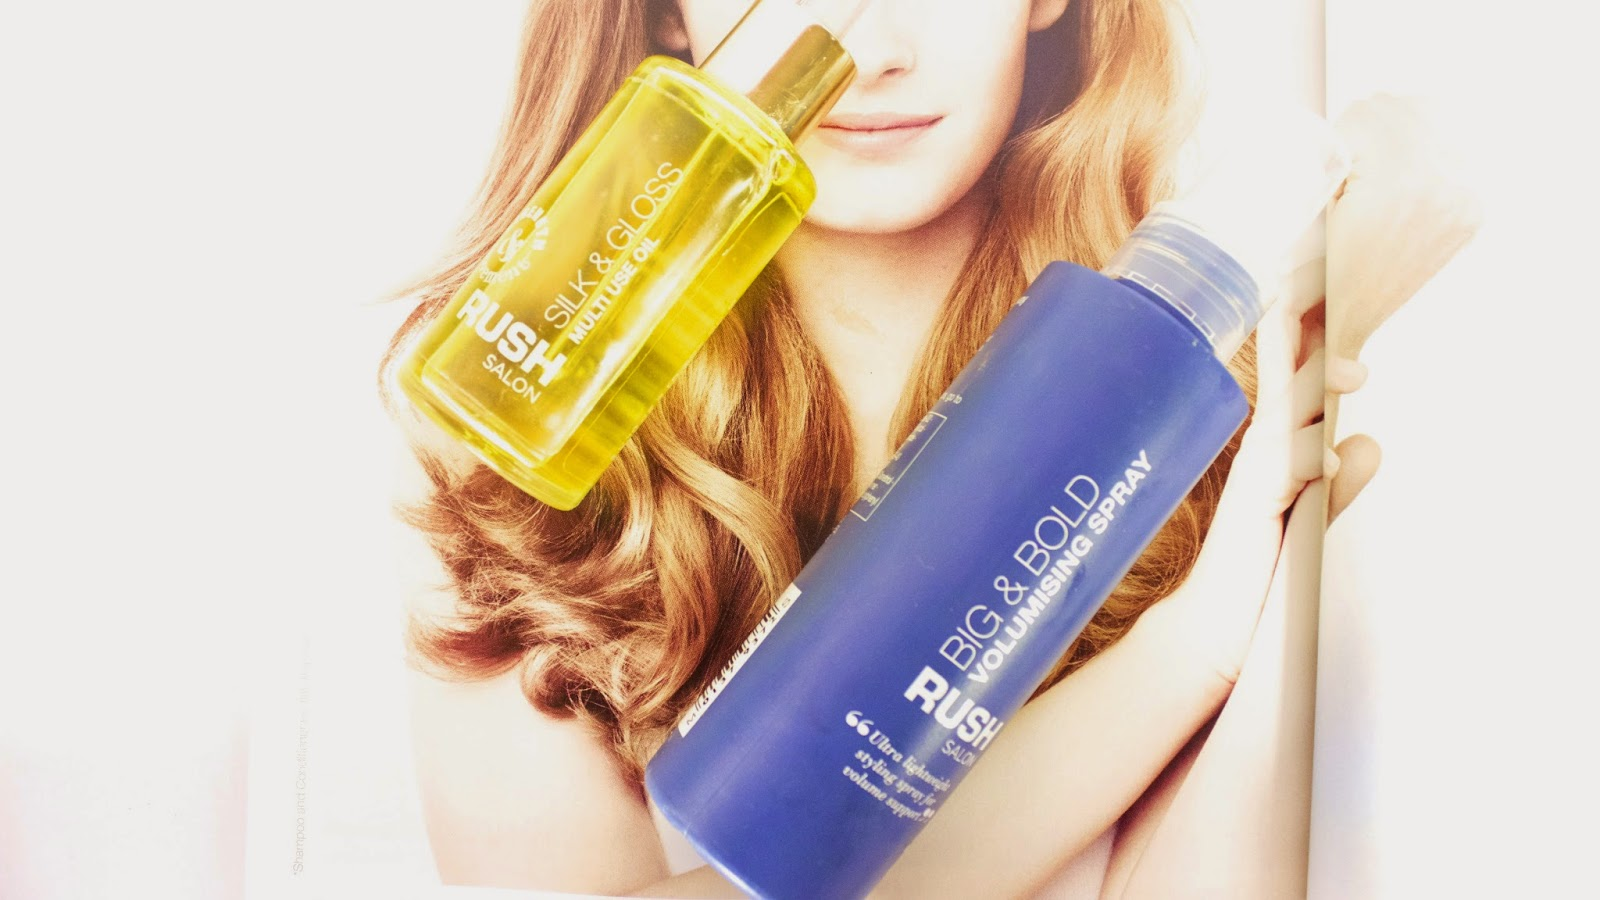 RUSH SALON PRODUCTS REVIEW : M&S LAUNCH